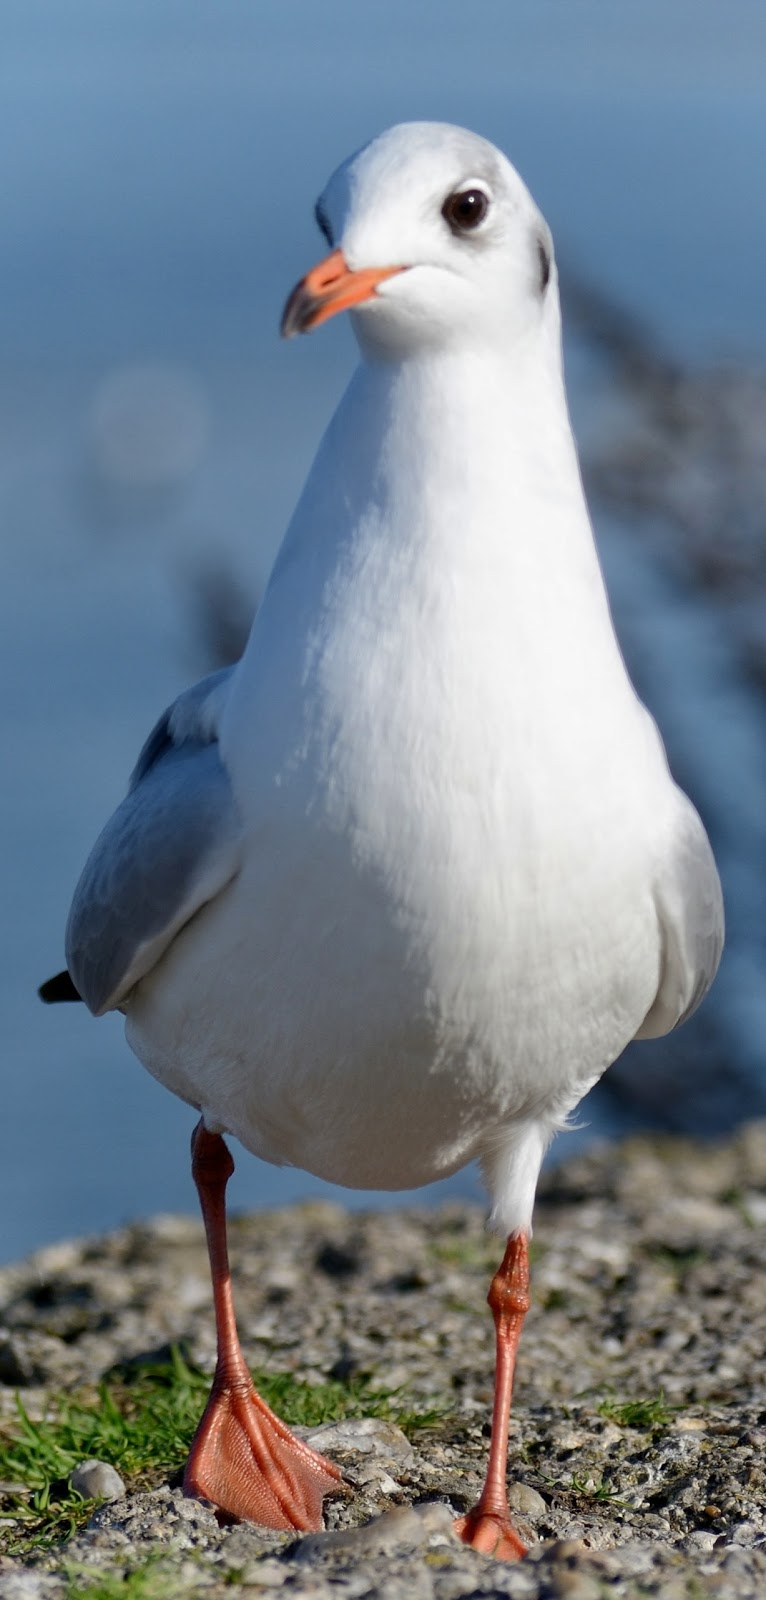 Up close photo of the gull butterwort bird.